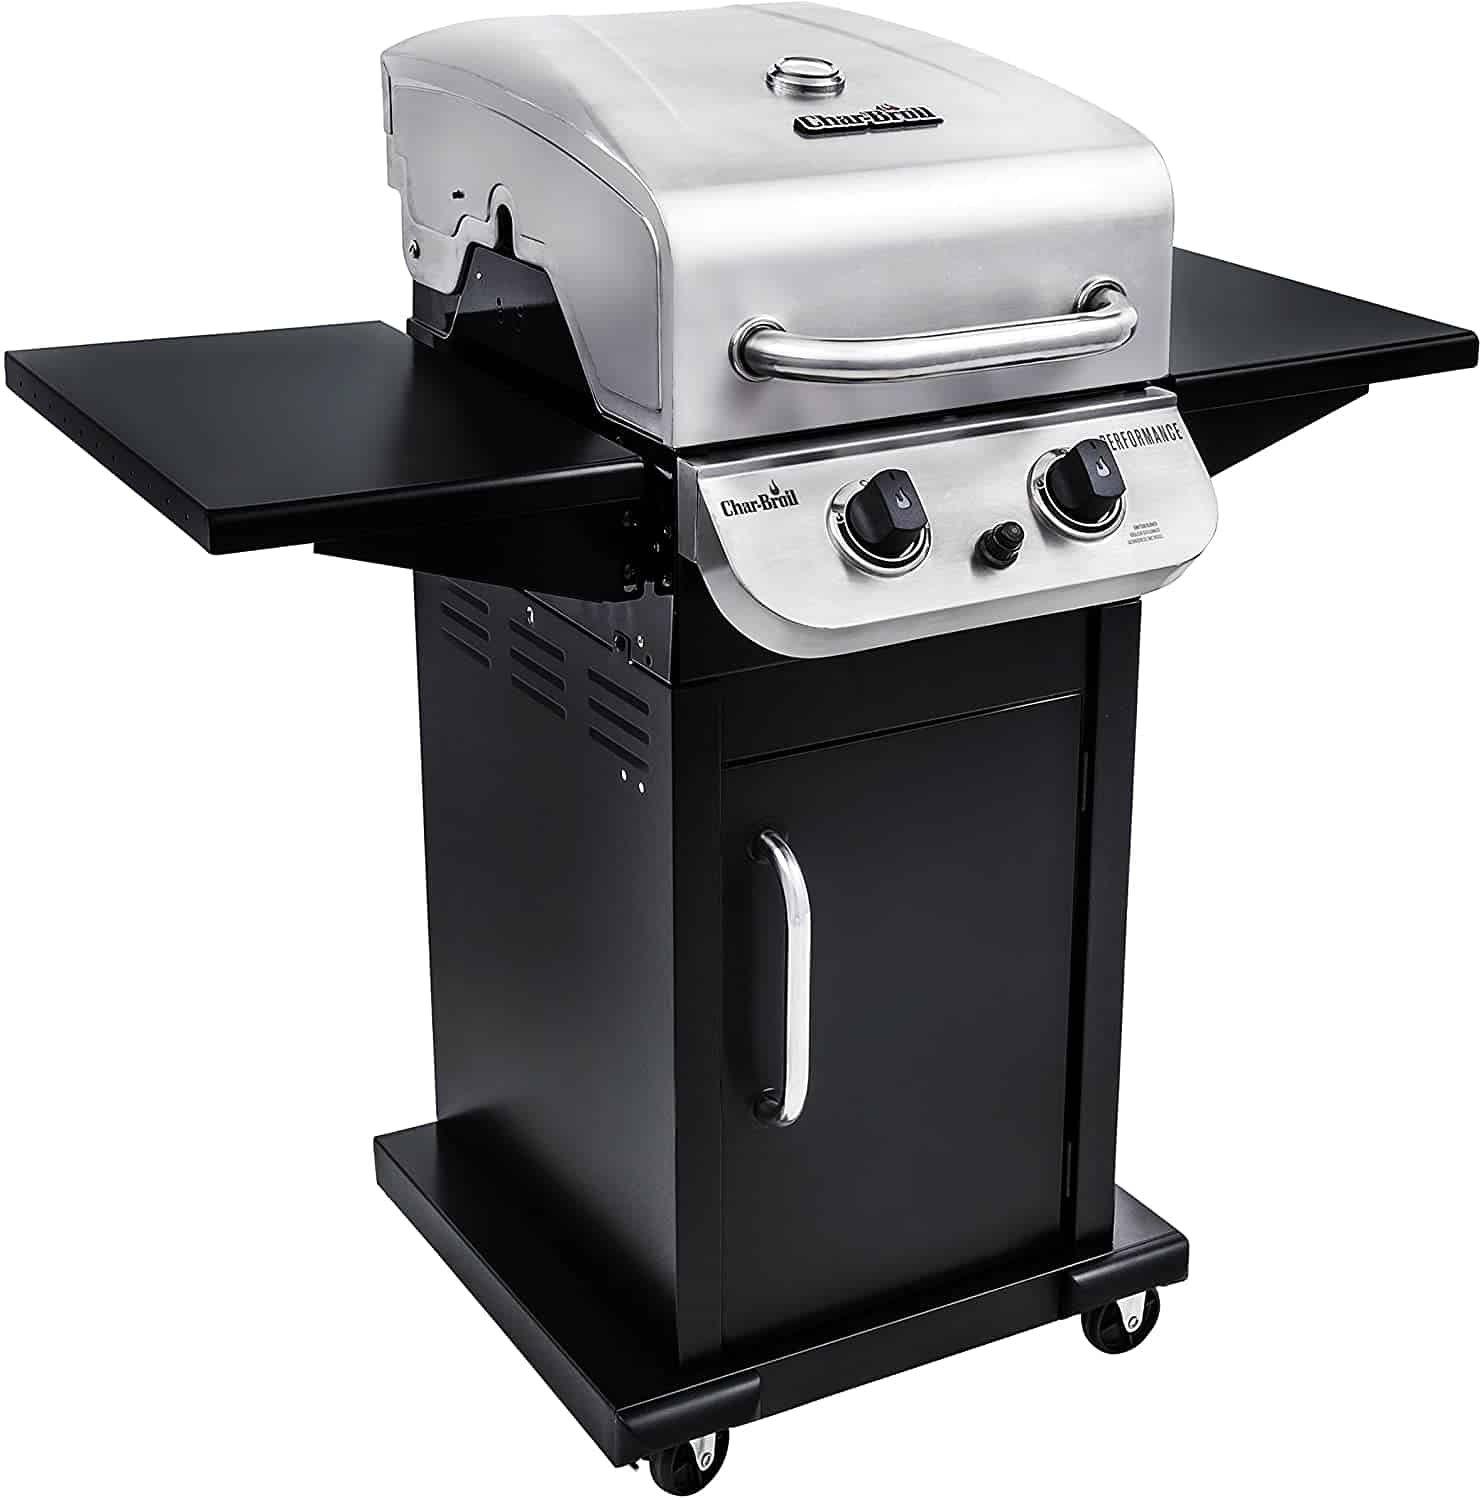 Best propane grill for small spaces- Char-Broil Performance 300